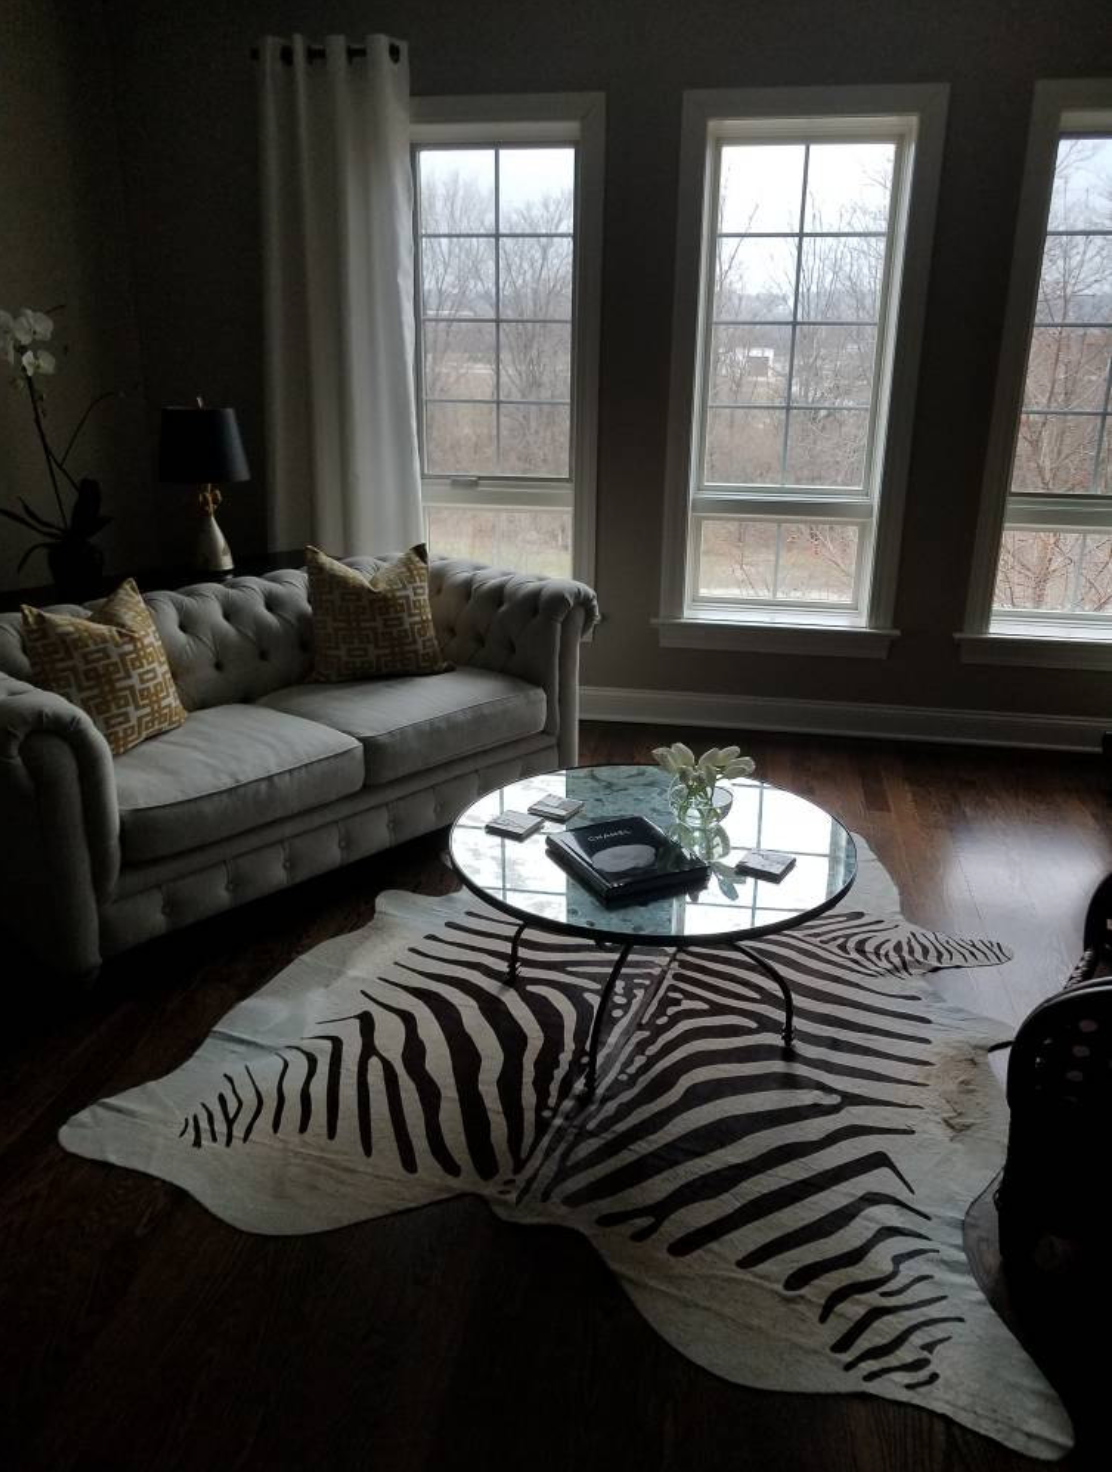 Zebra Print Cowhide Rug Photo Shared By One Of Our Hy